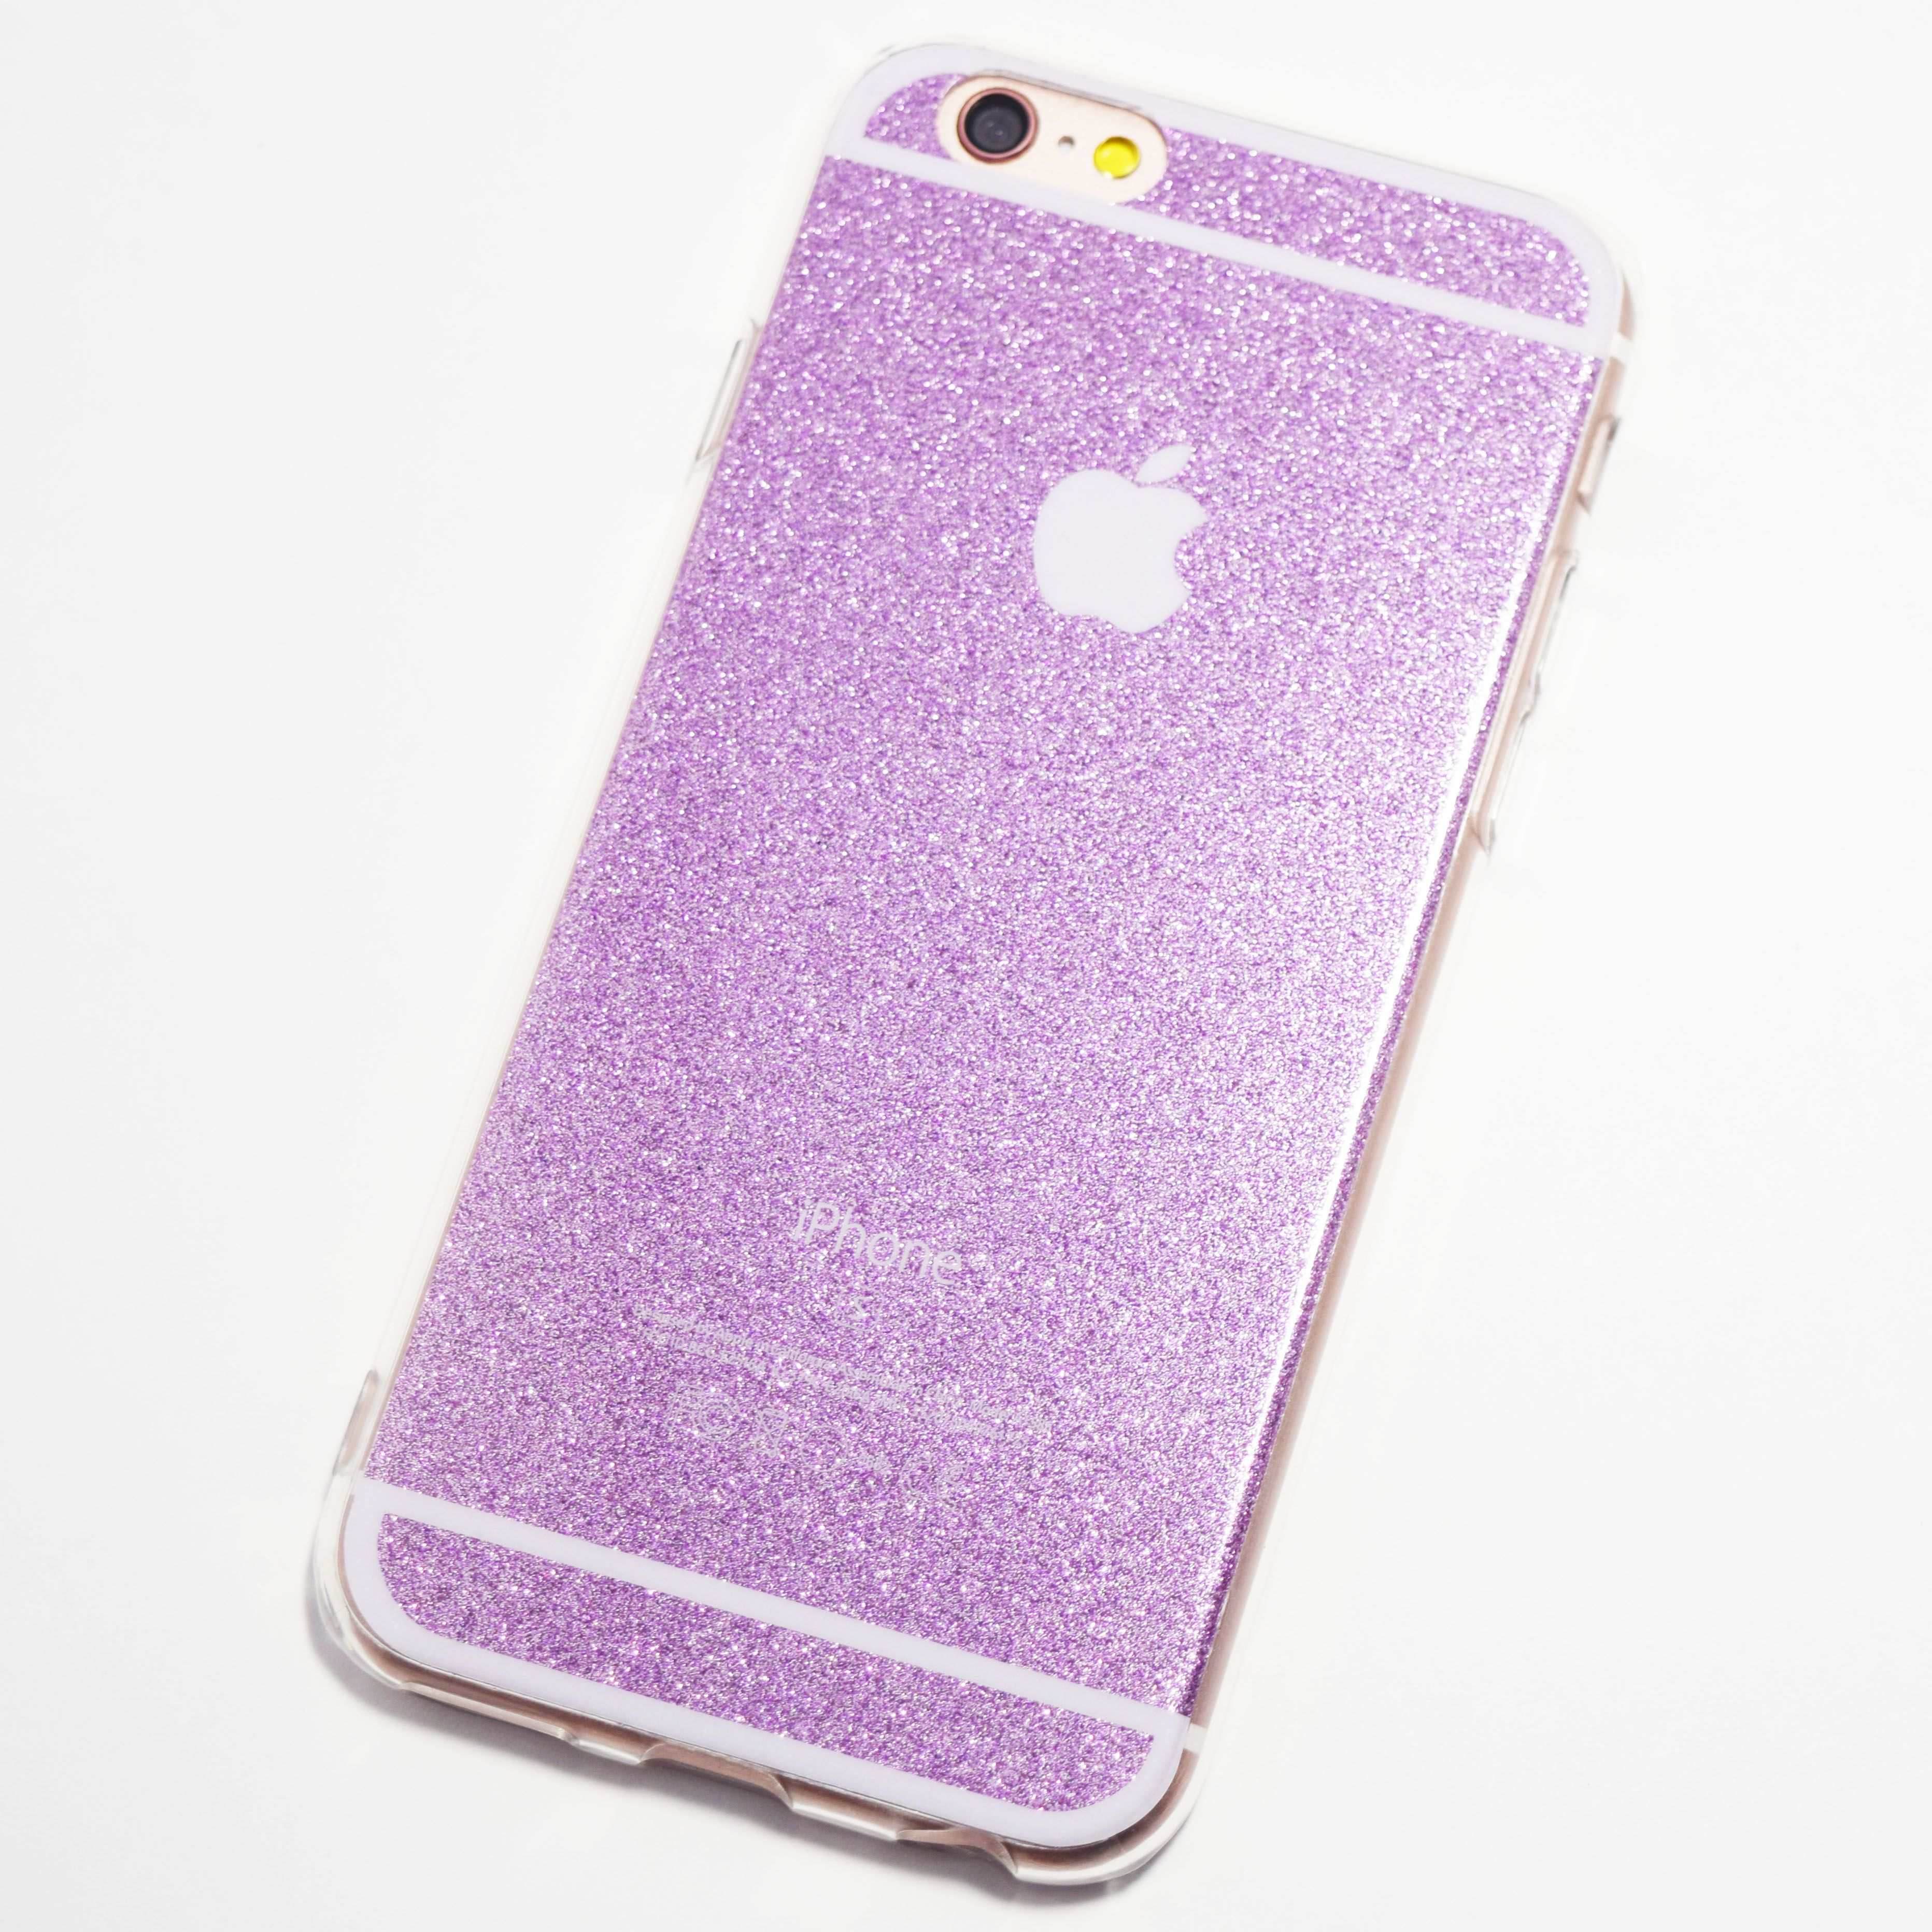 Rose Glittery IPhone 6 Case